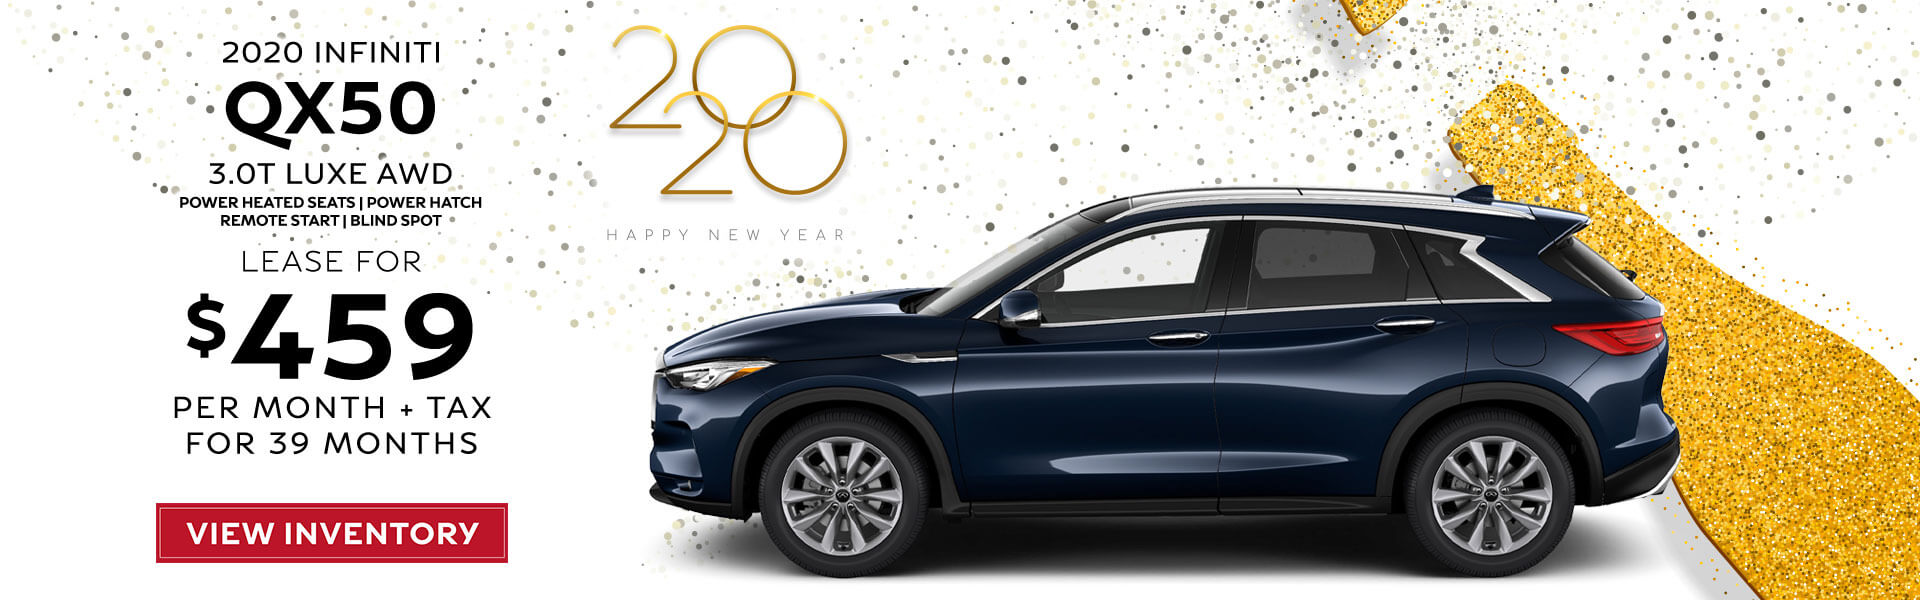 QX50 - Lease for $459